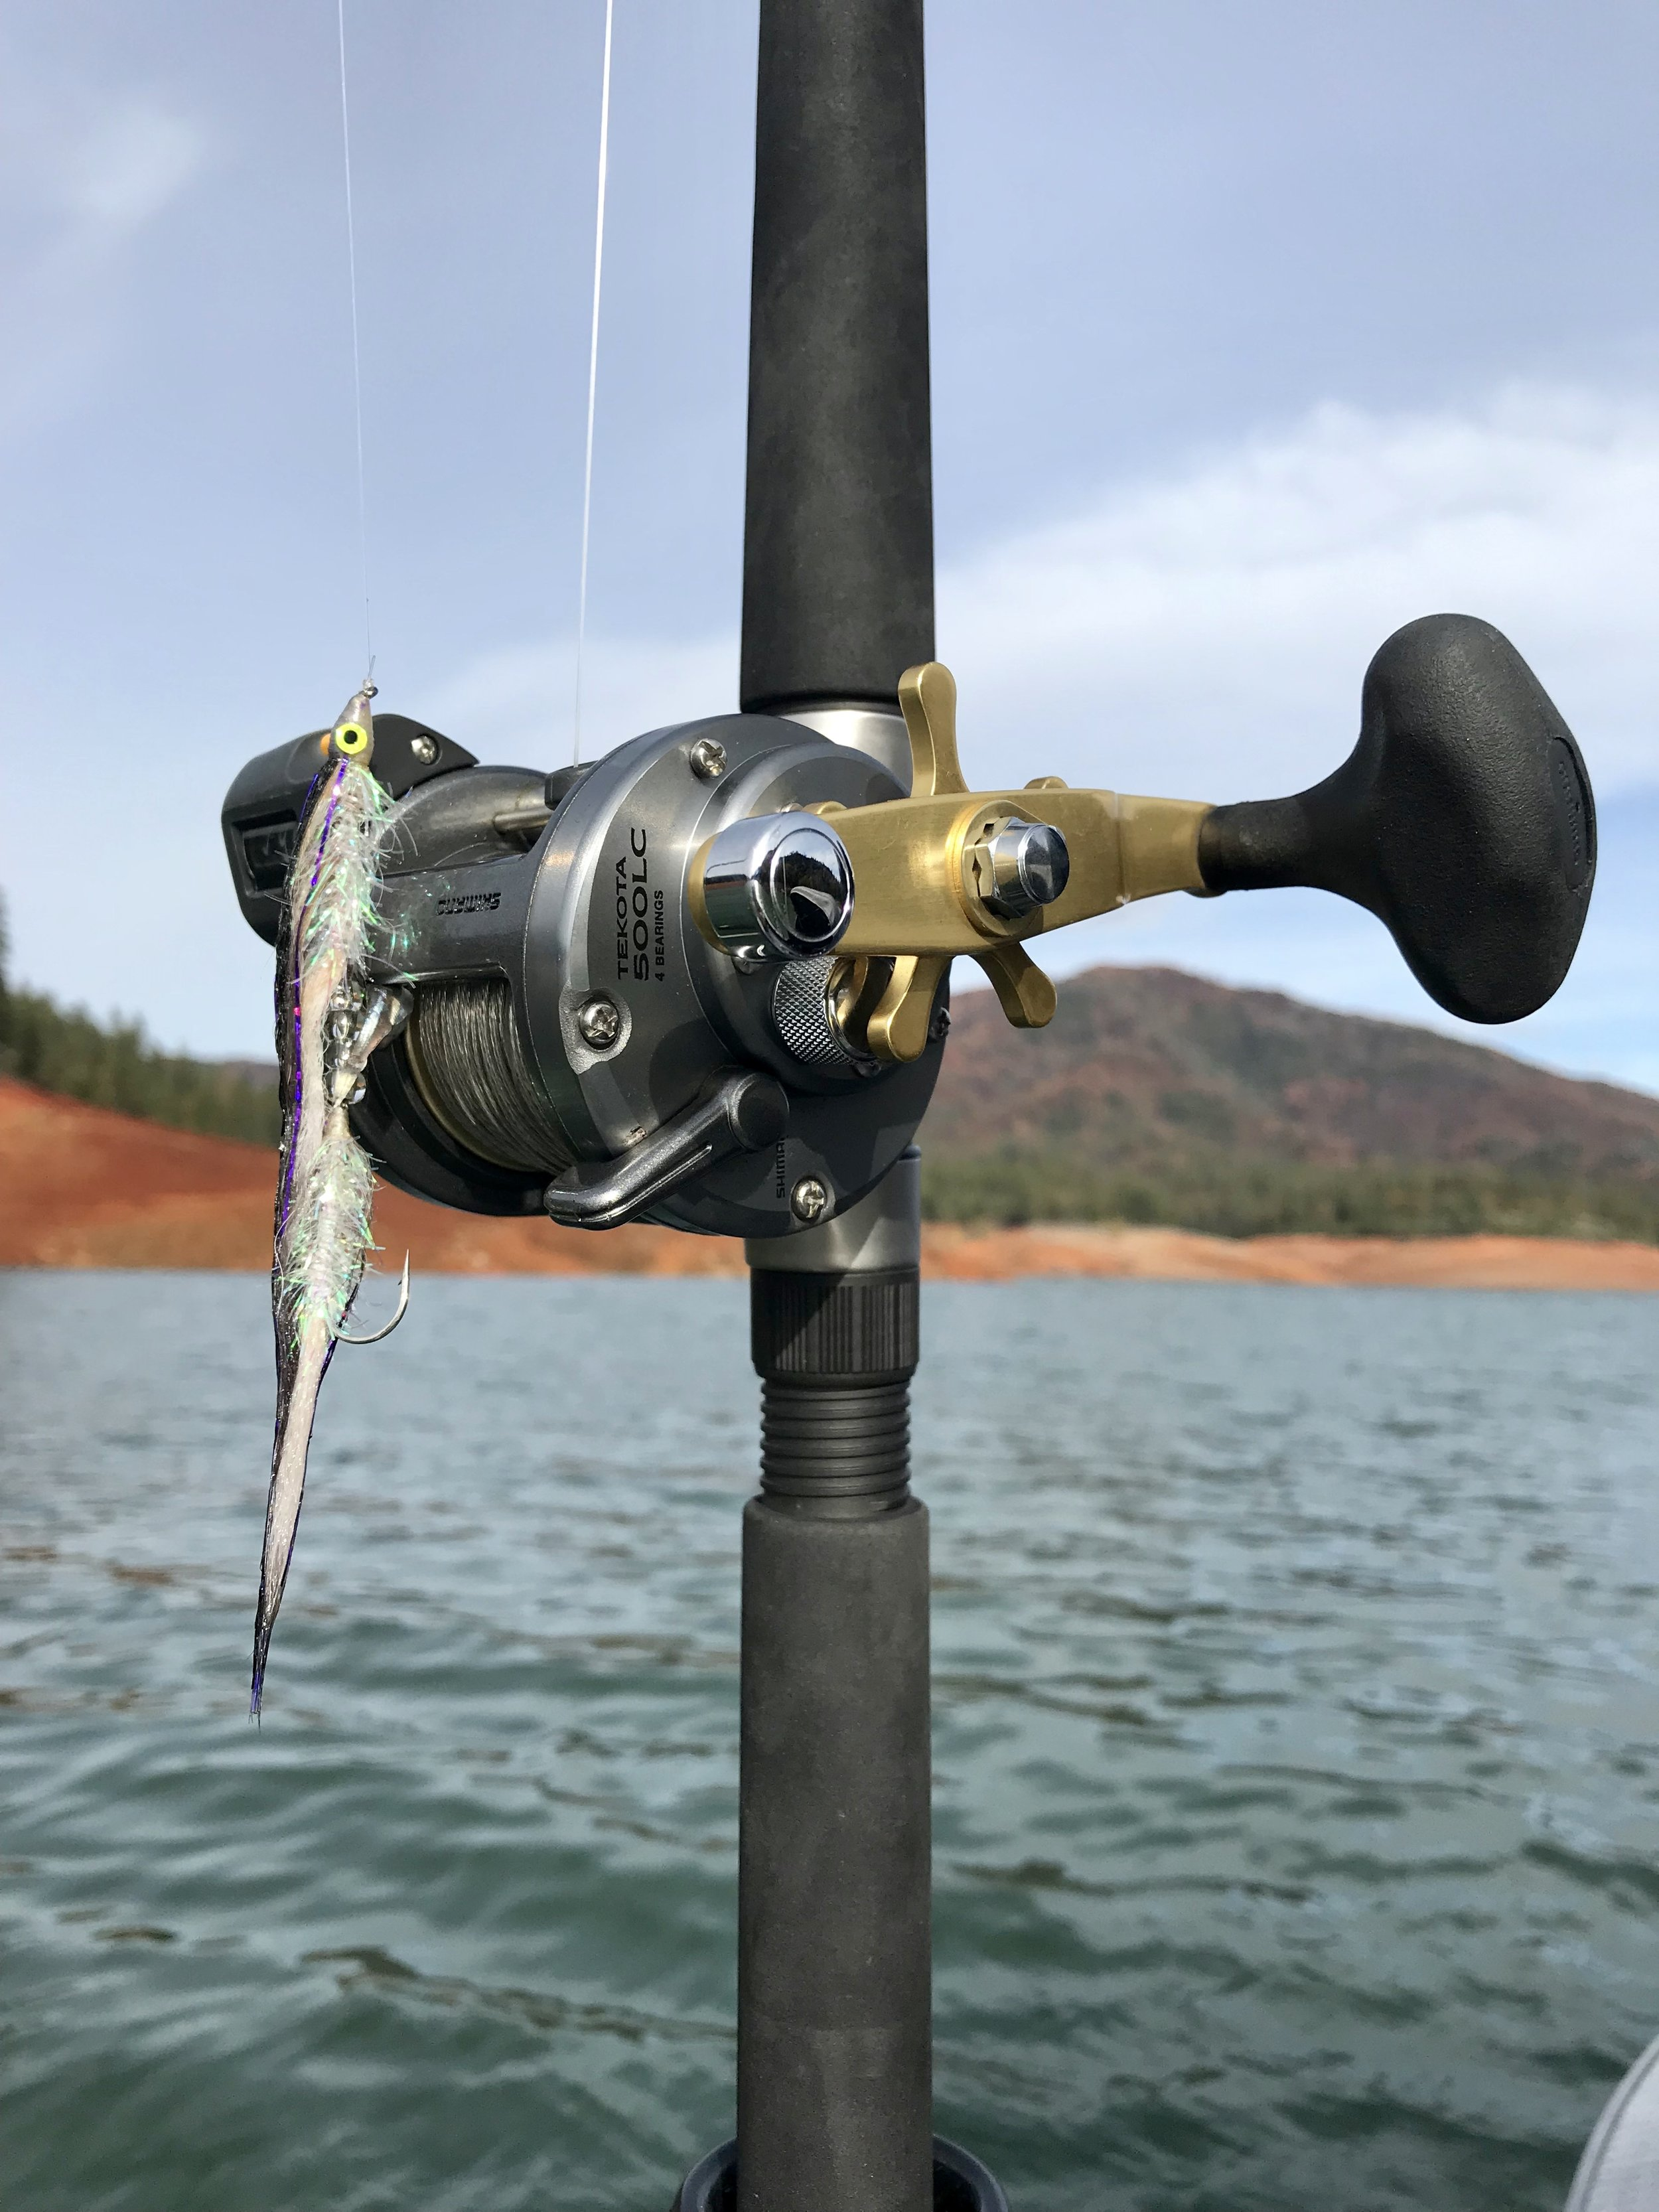 Only top shelf rods, reels, and terminal tackle will be supplied for our valued guests during your day of fishing with us.